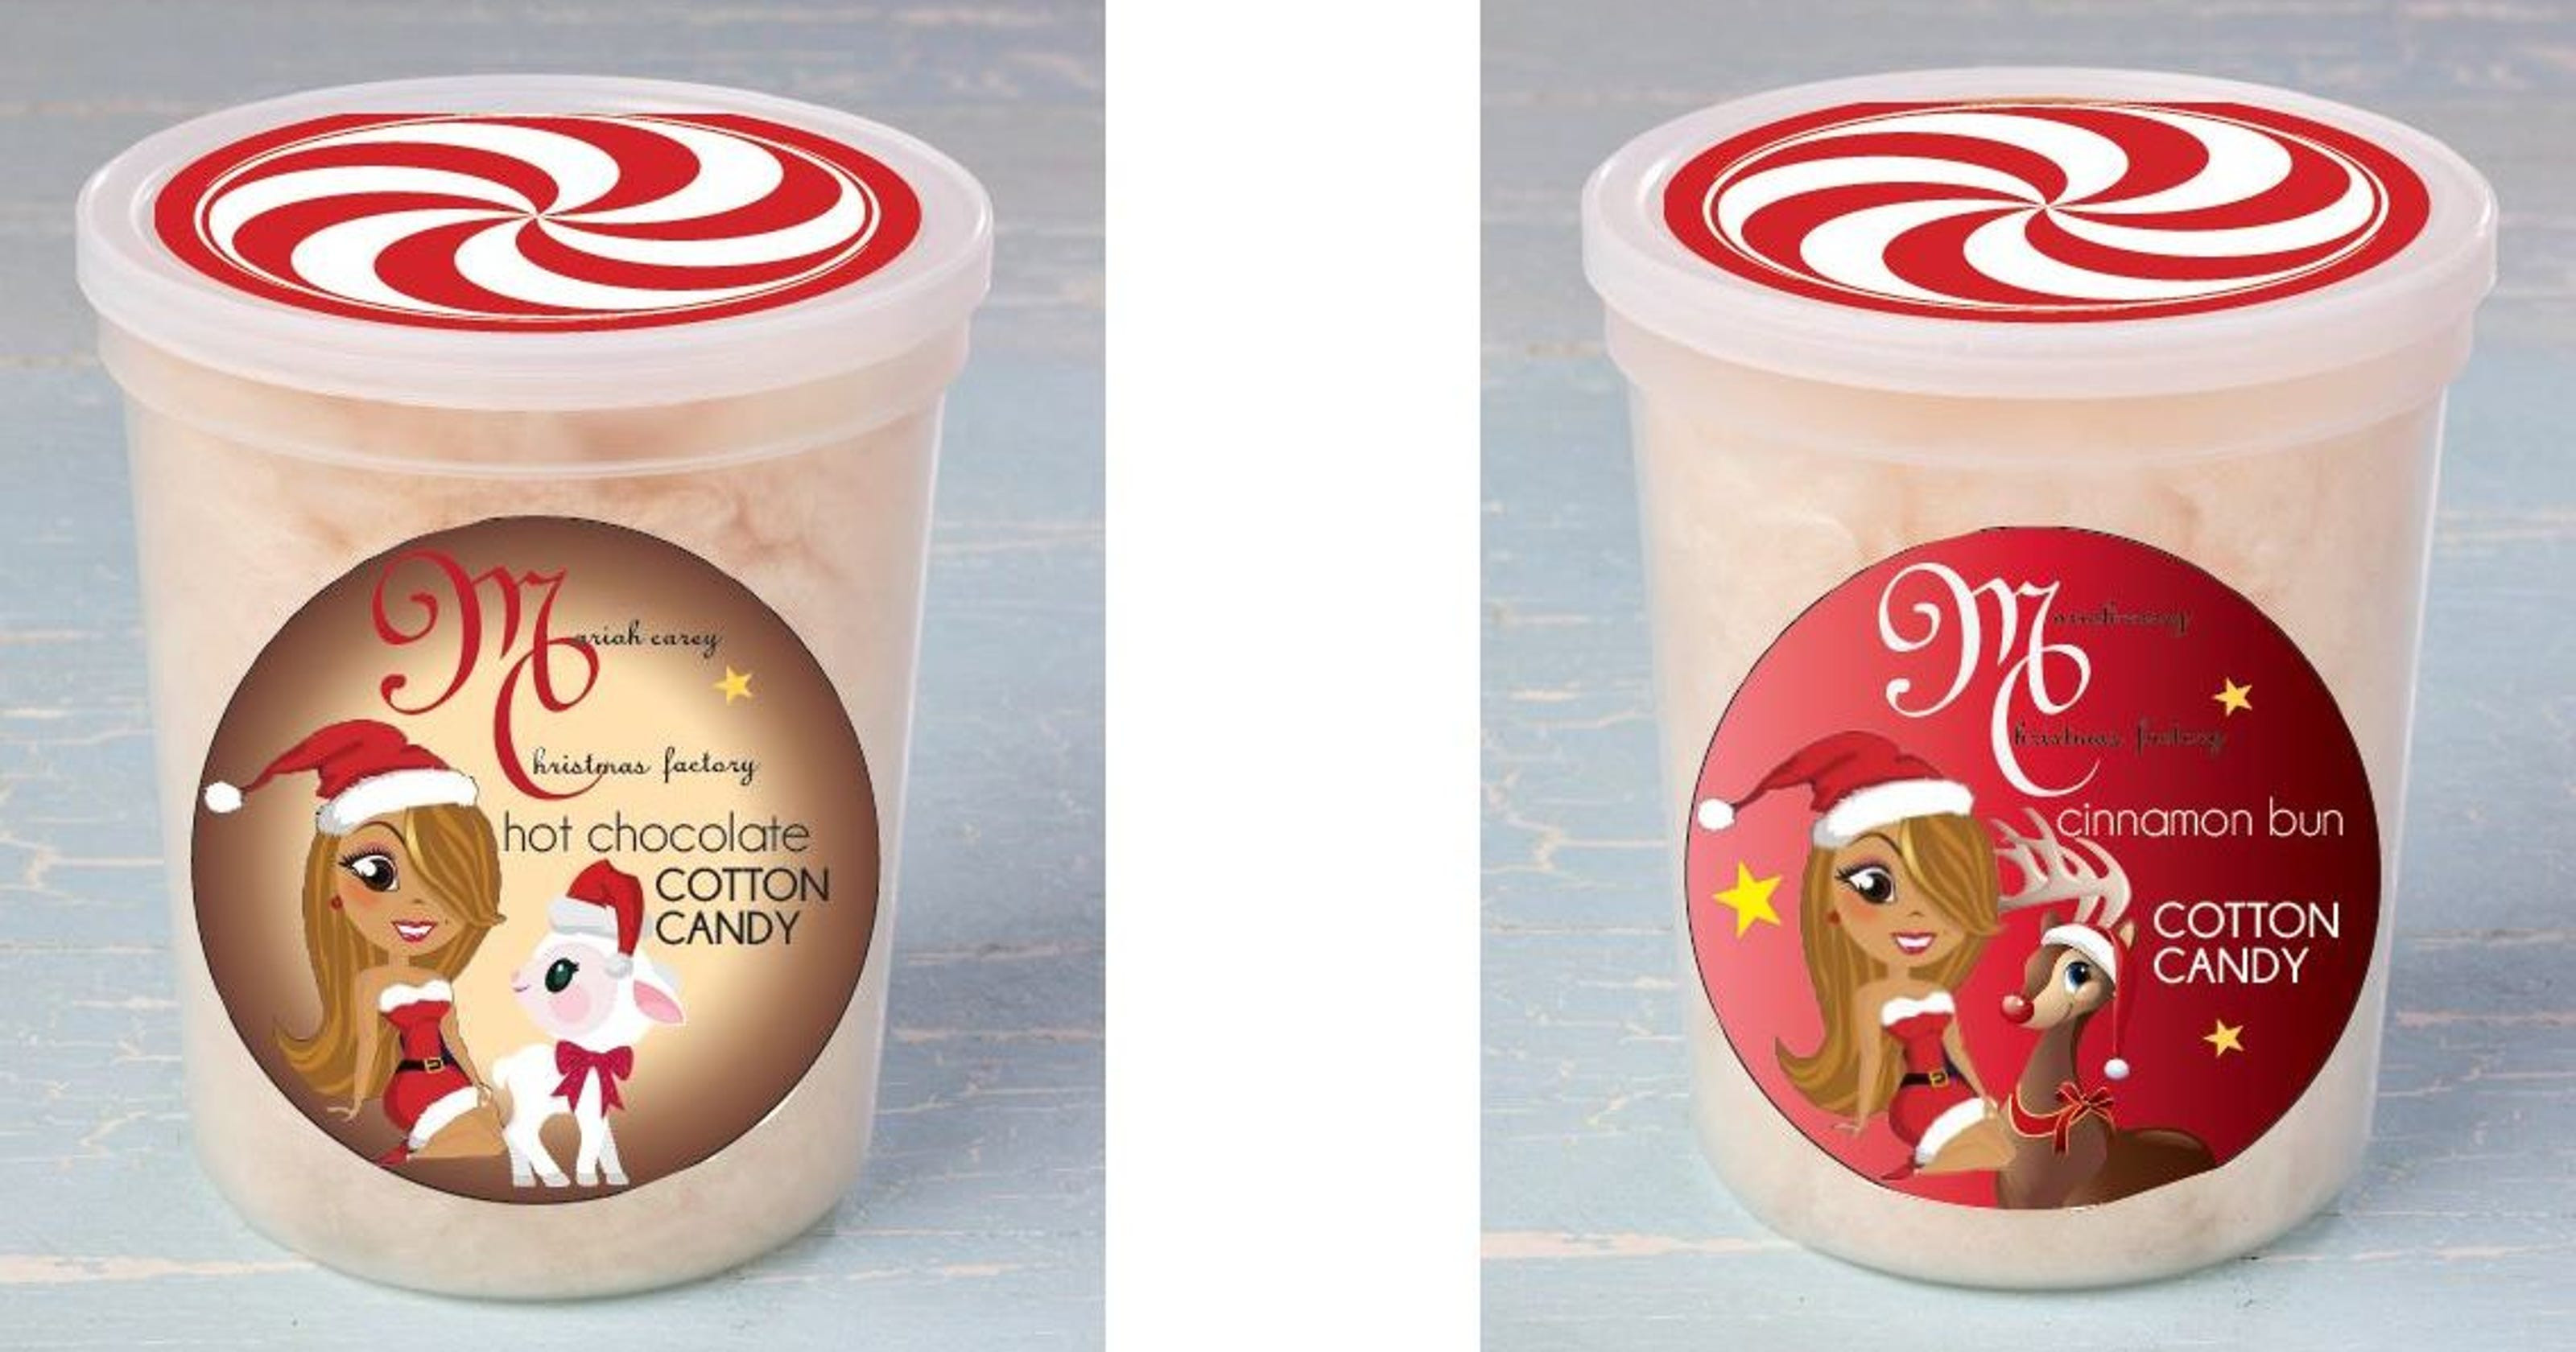 Christmas Cotton Candy  Mariah Carey collection features Iowa cotton candy